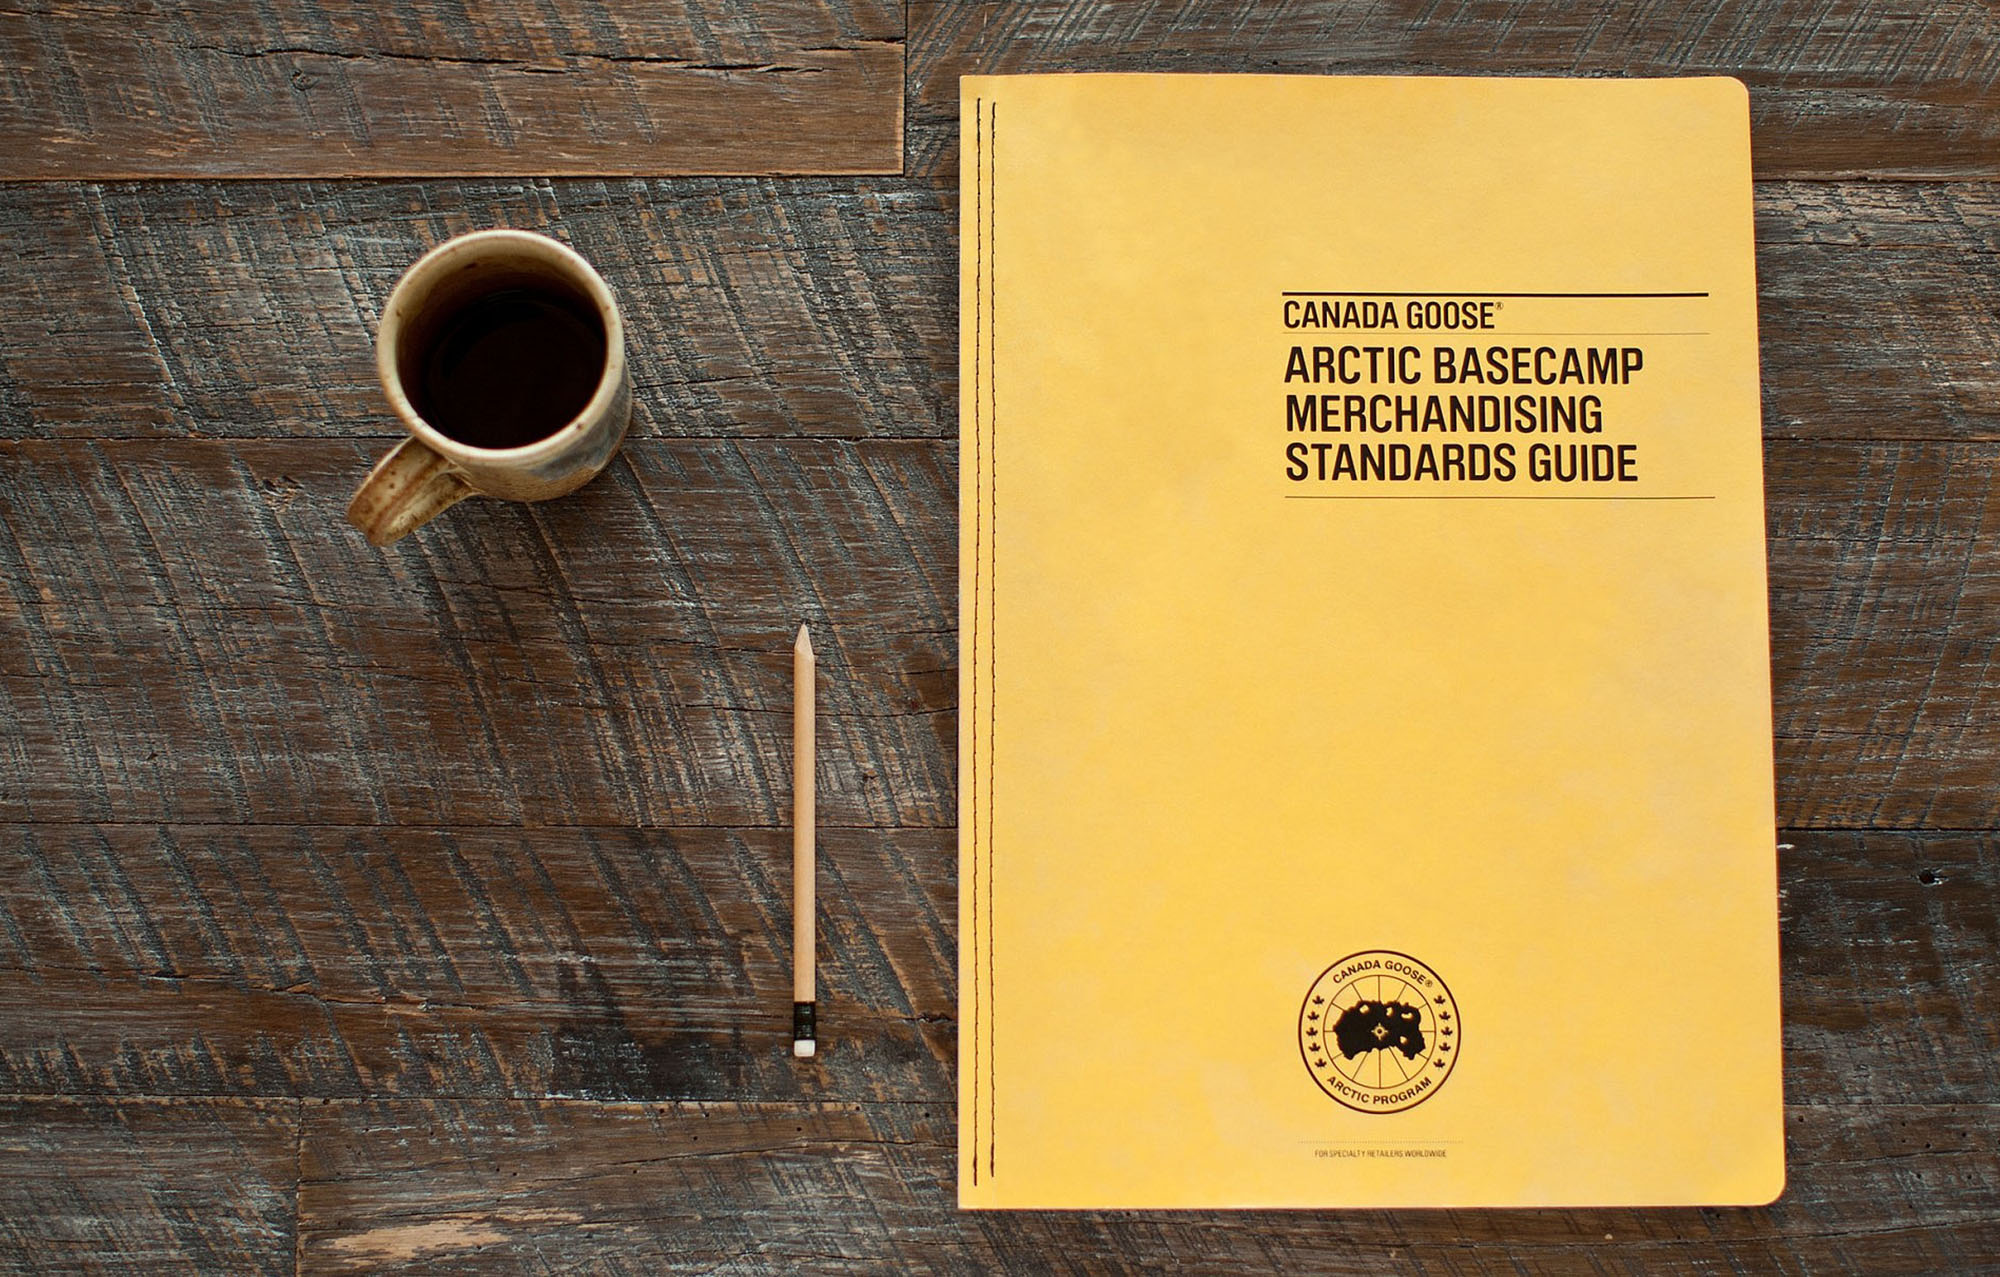 Global merchandising standards guide